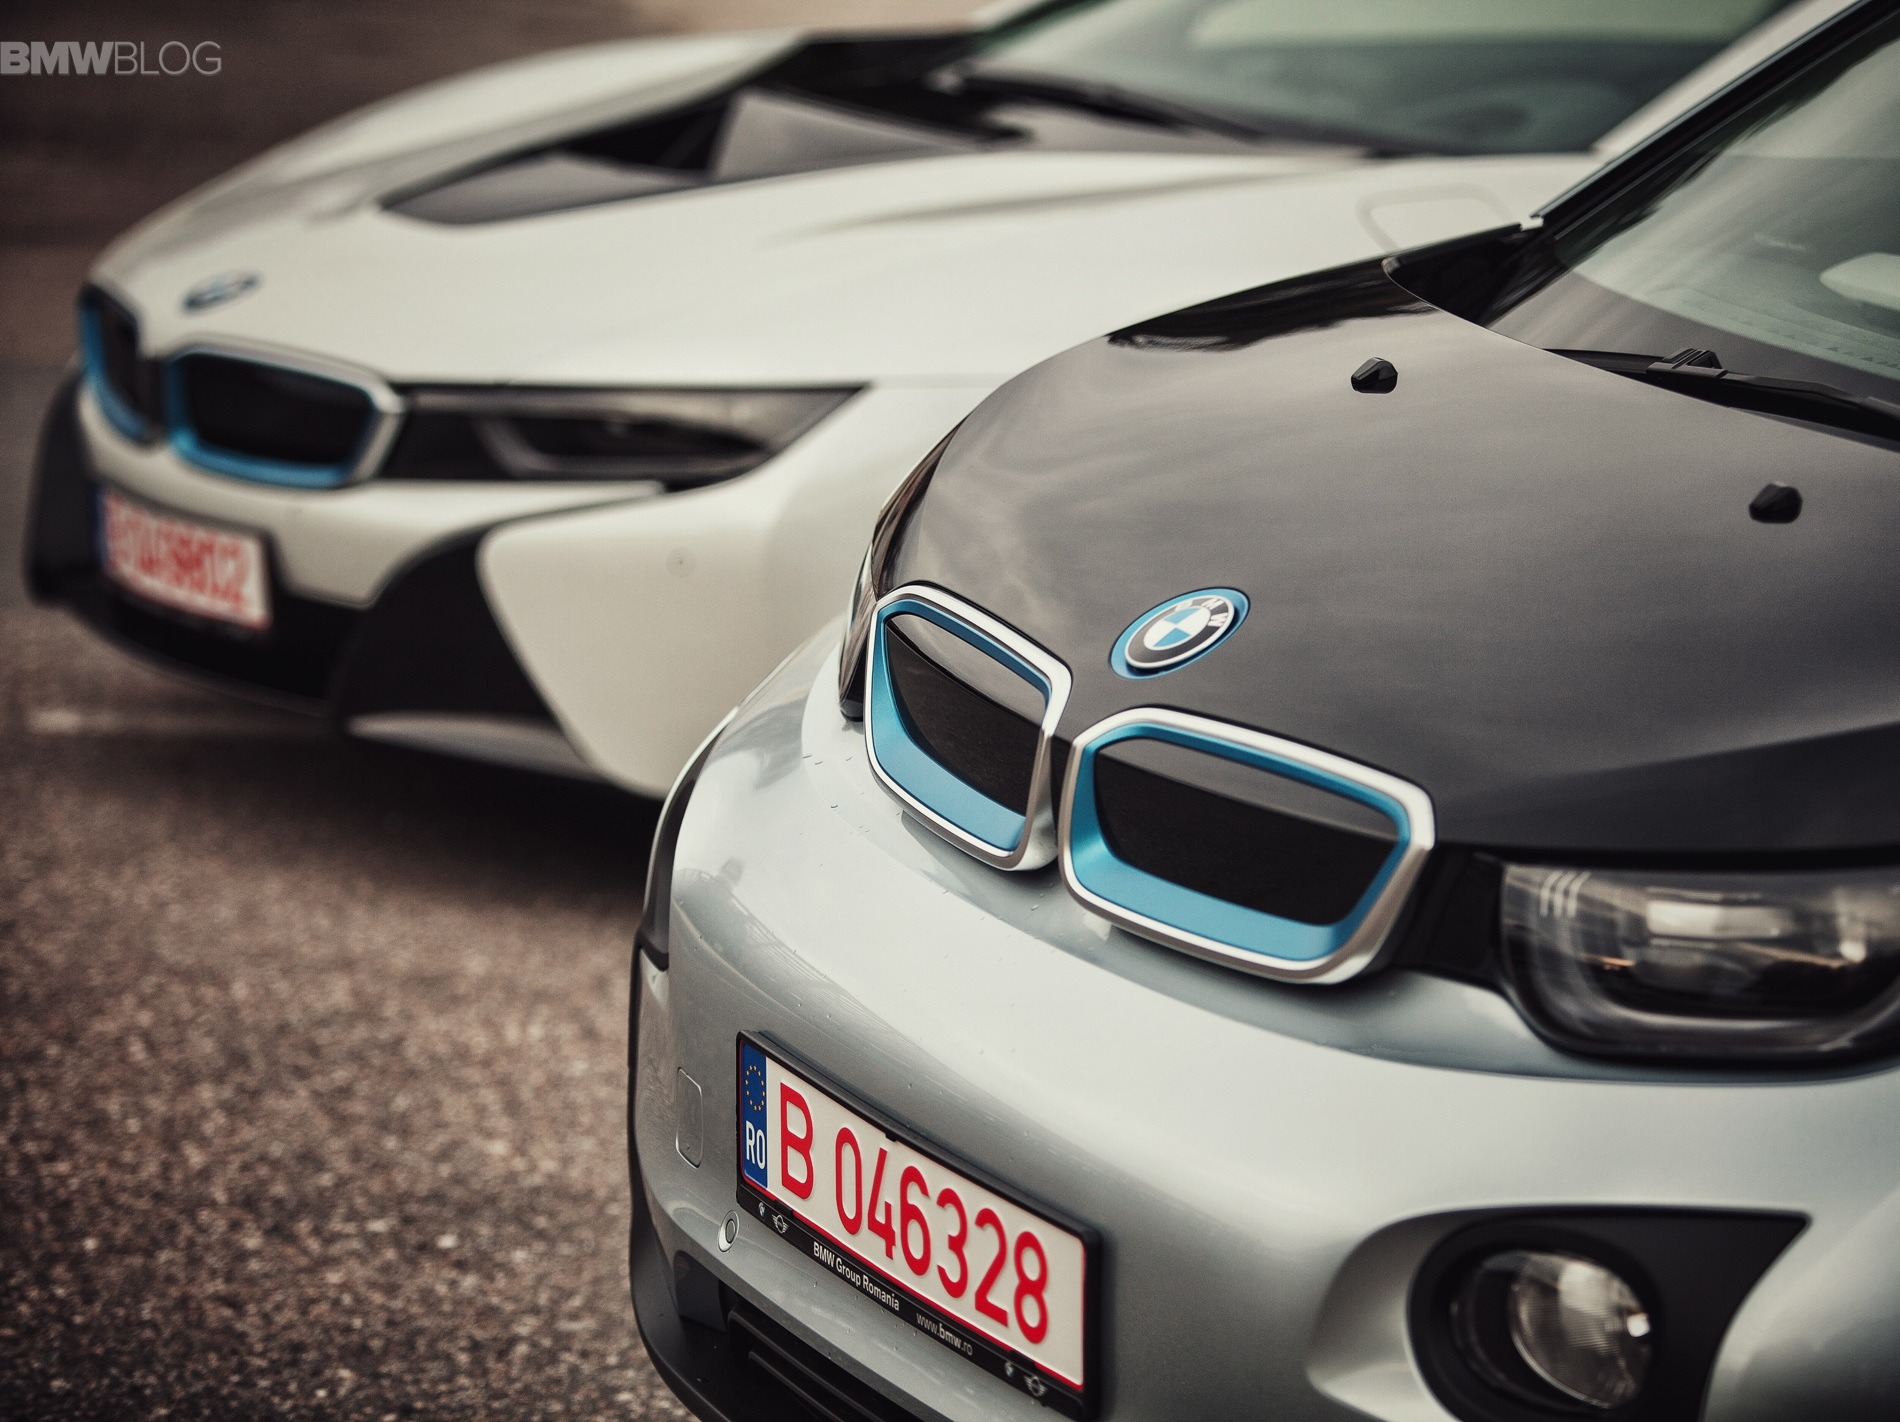 BMW i3 i8 photoshoot bucharest images 21